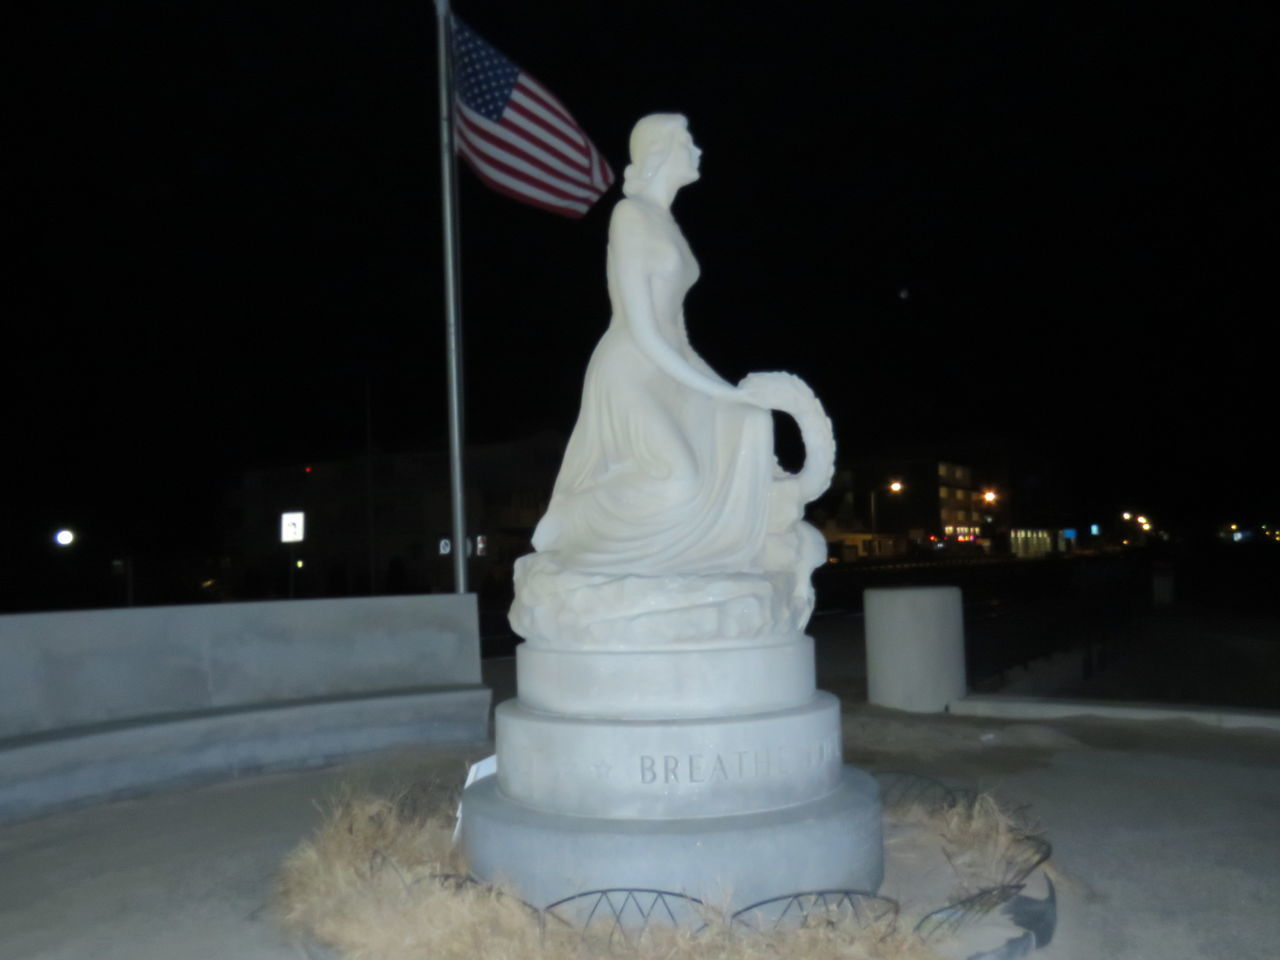 Hampton Beach statue Flag Hampton Beach Memorial Site Men Lost At Sea Night Pics No People Outdoors Patriotism Stars And Stripes Forever Statue Of A Woman Us Woman Waiting Wreath Of Flowers